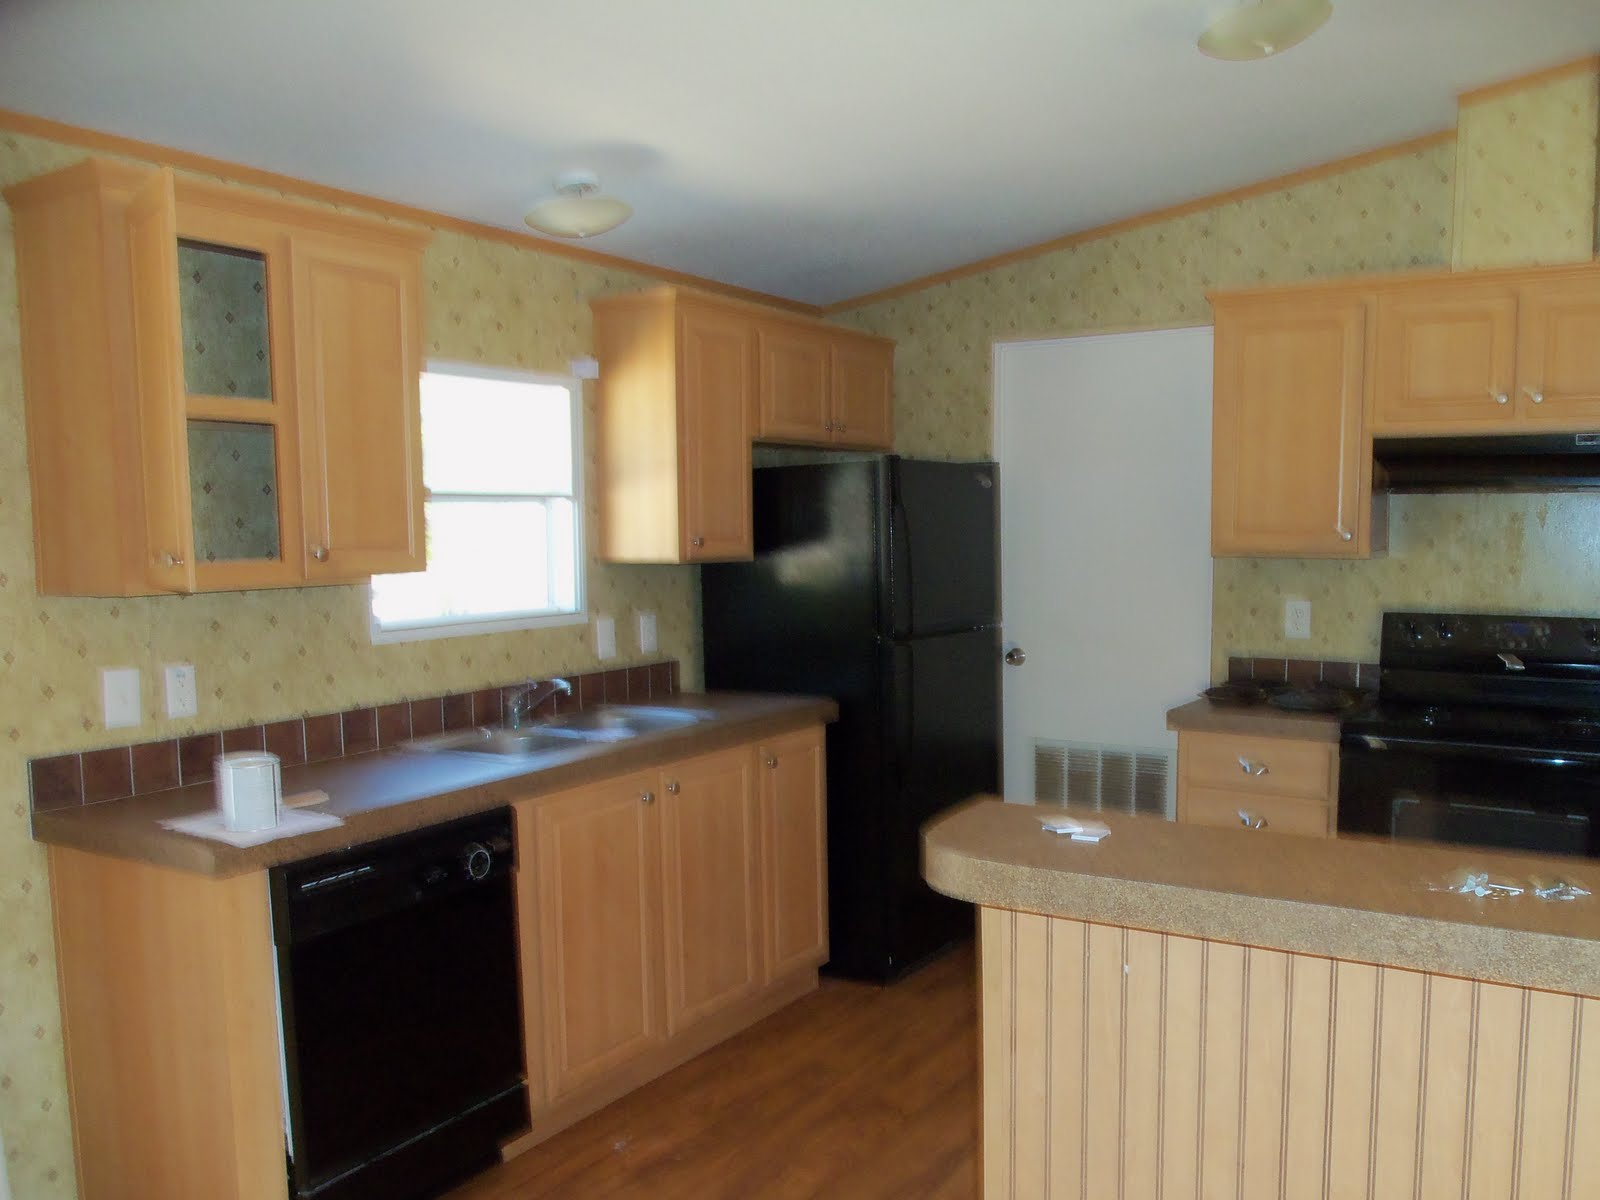 Kitchen2 Paint Interior Mobile Home Walls In Kitchen on mobile home exterior walls, manufactured homes walls, mobile home insulation walls,